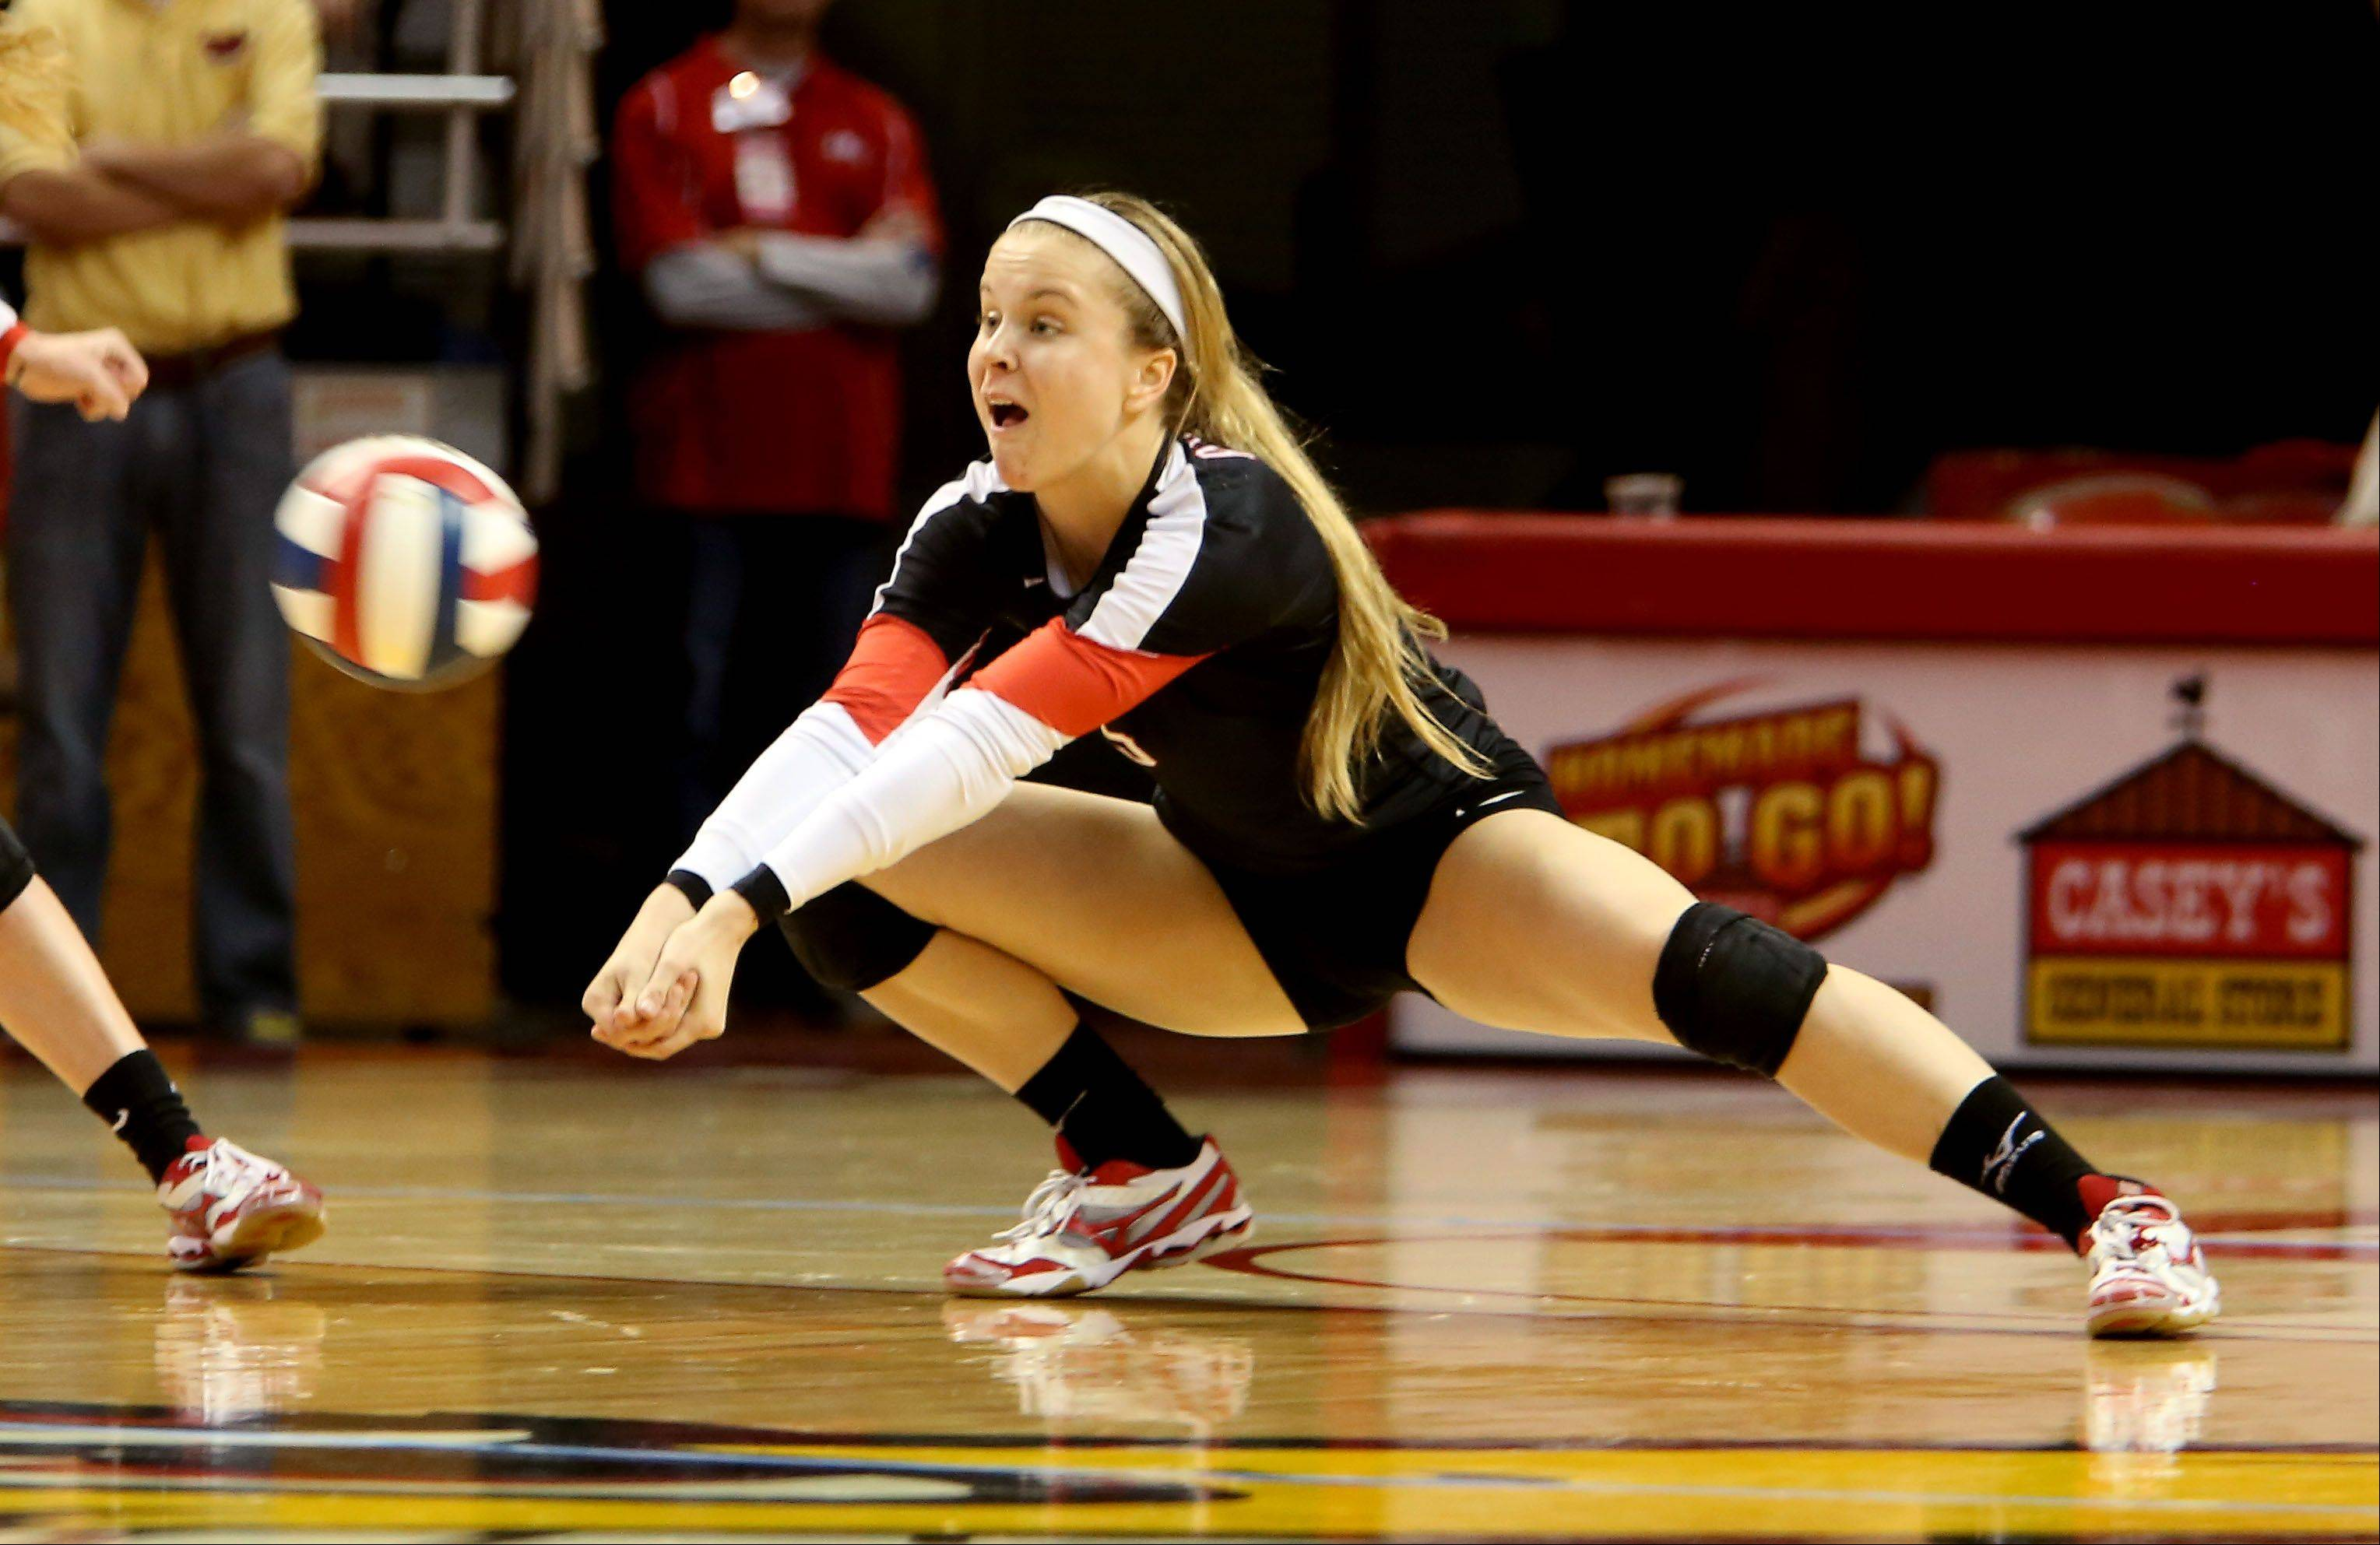 Tiffany Clark of Benet digs deep for a return against Mother McAuley in the Class 4A championship girls volleyball match on Saturday in Normal.